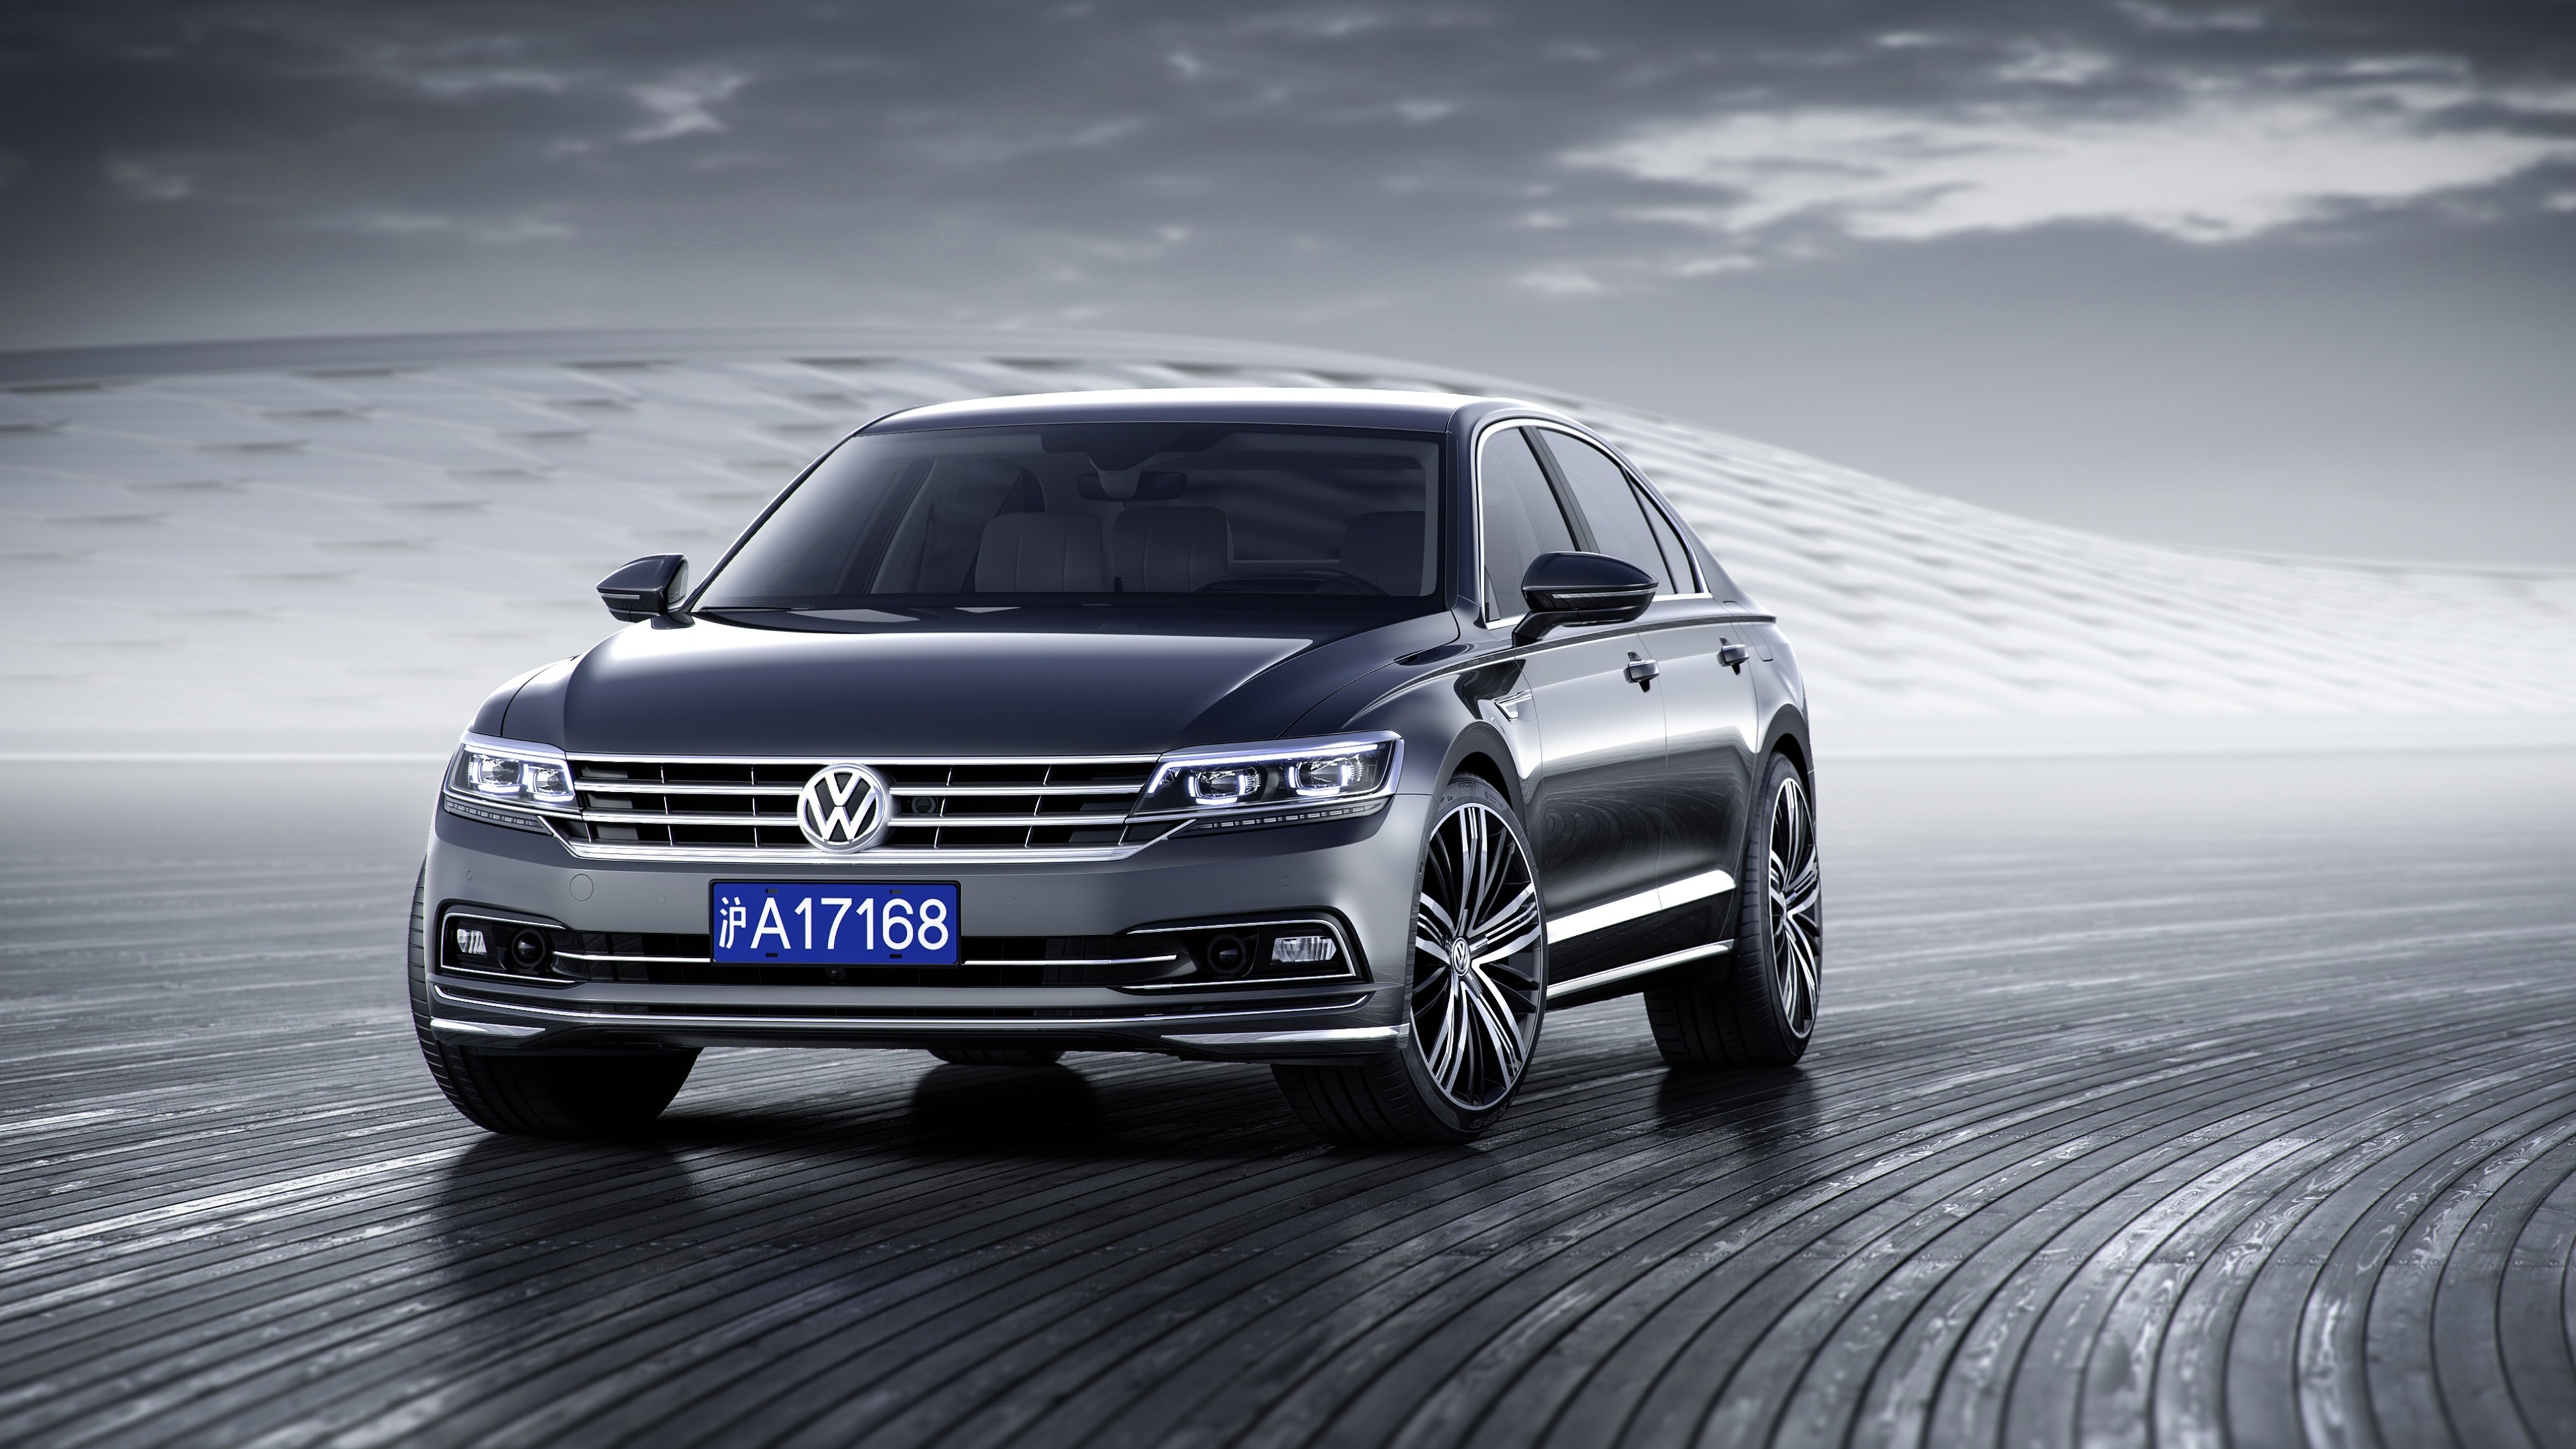 2017 volkswagen phideon luxury sedan wallpaper hd car wallpapers id 6372. Black Bedroom Furniture Sets. Home Design Ideas